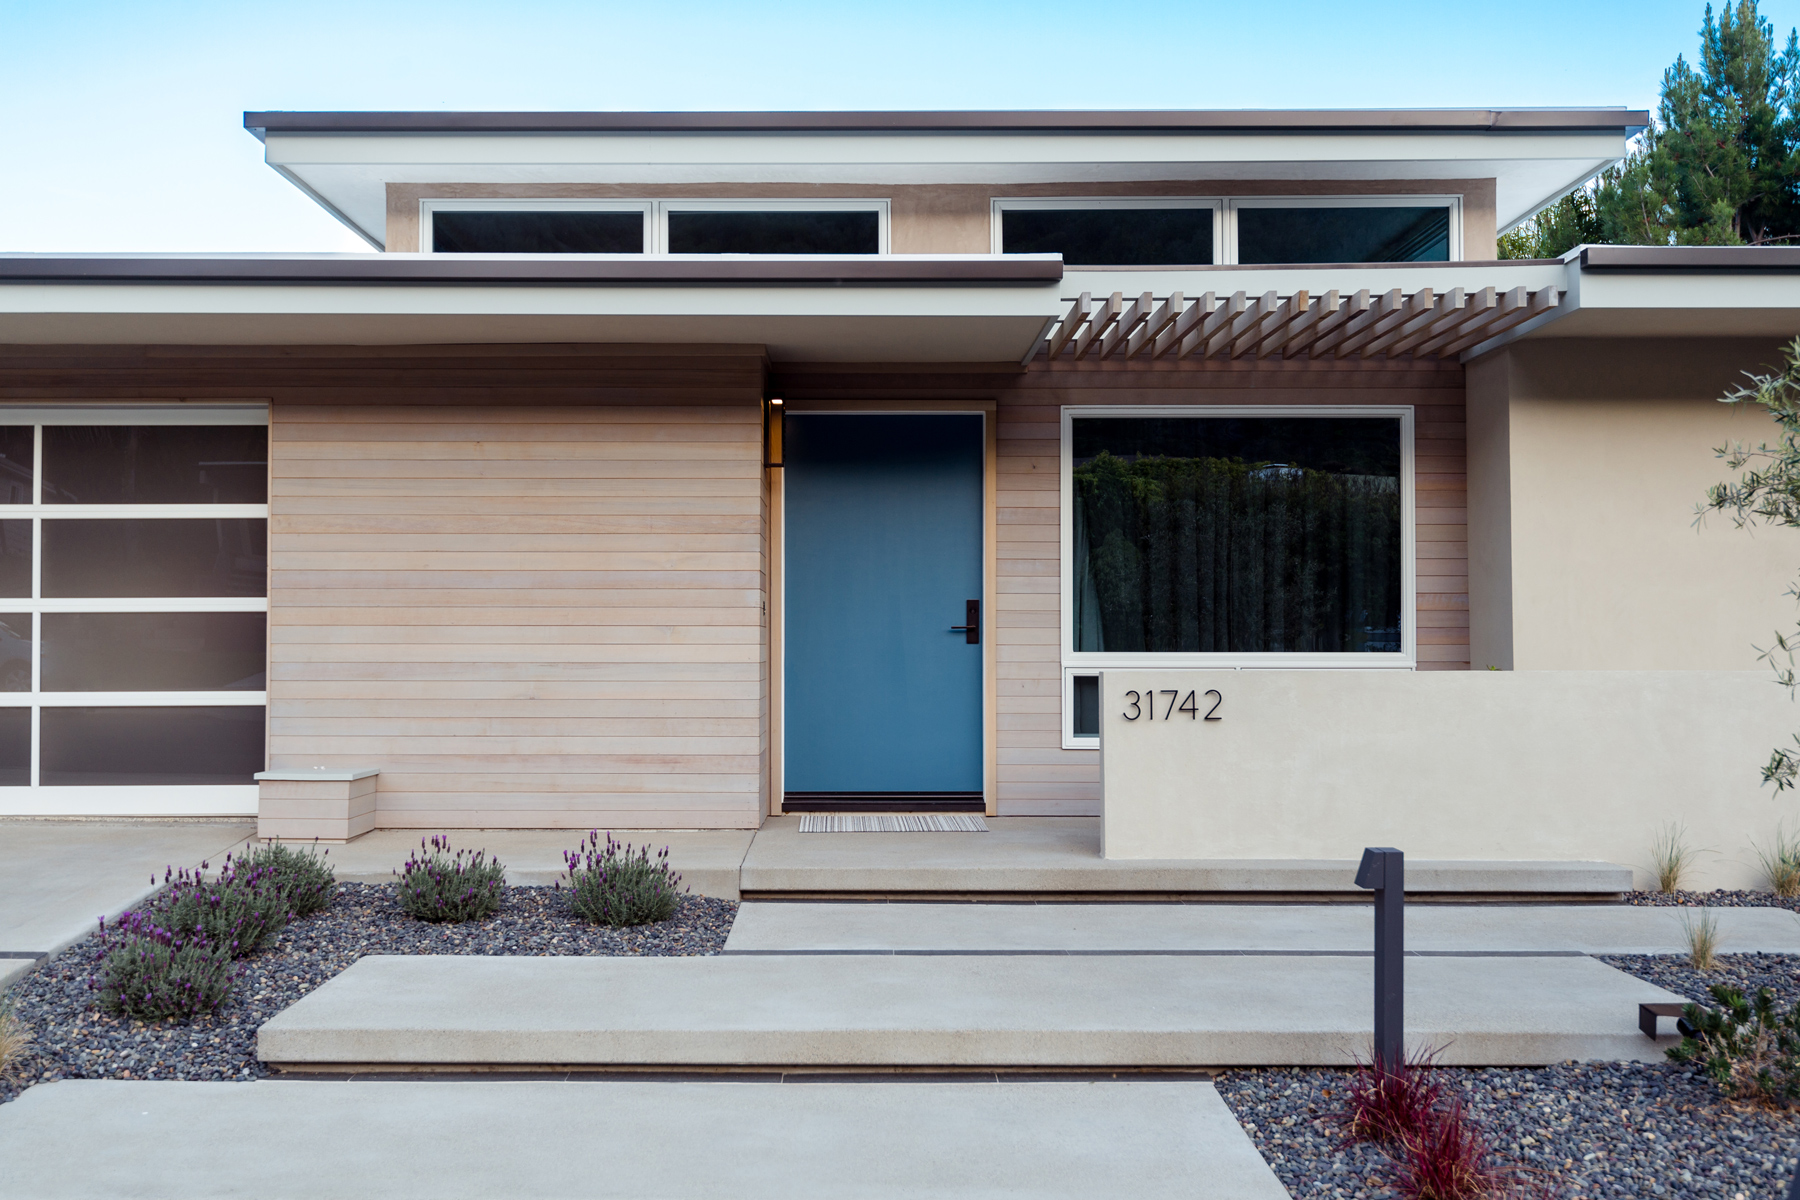 Midcentury Modern Renovation // Moss Yaw Design studio architect